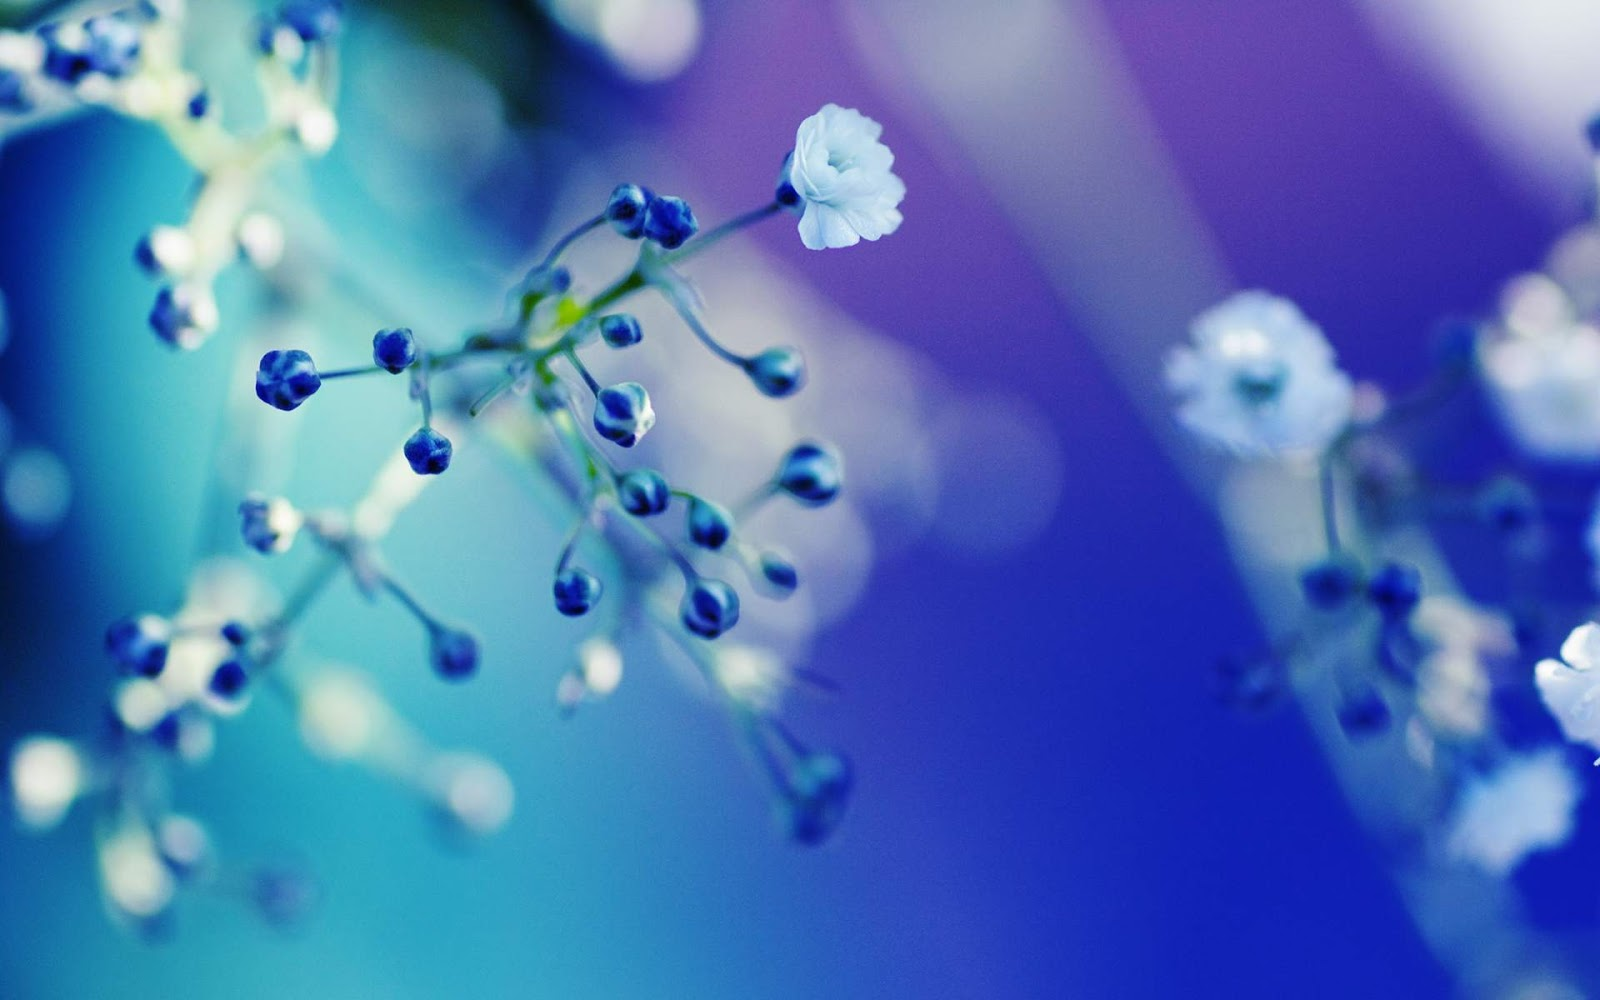 blue white flower close up wallpaper hd high resolution backgrounds hd 1600x1000